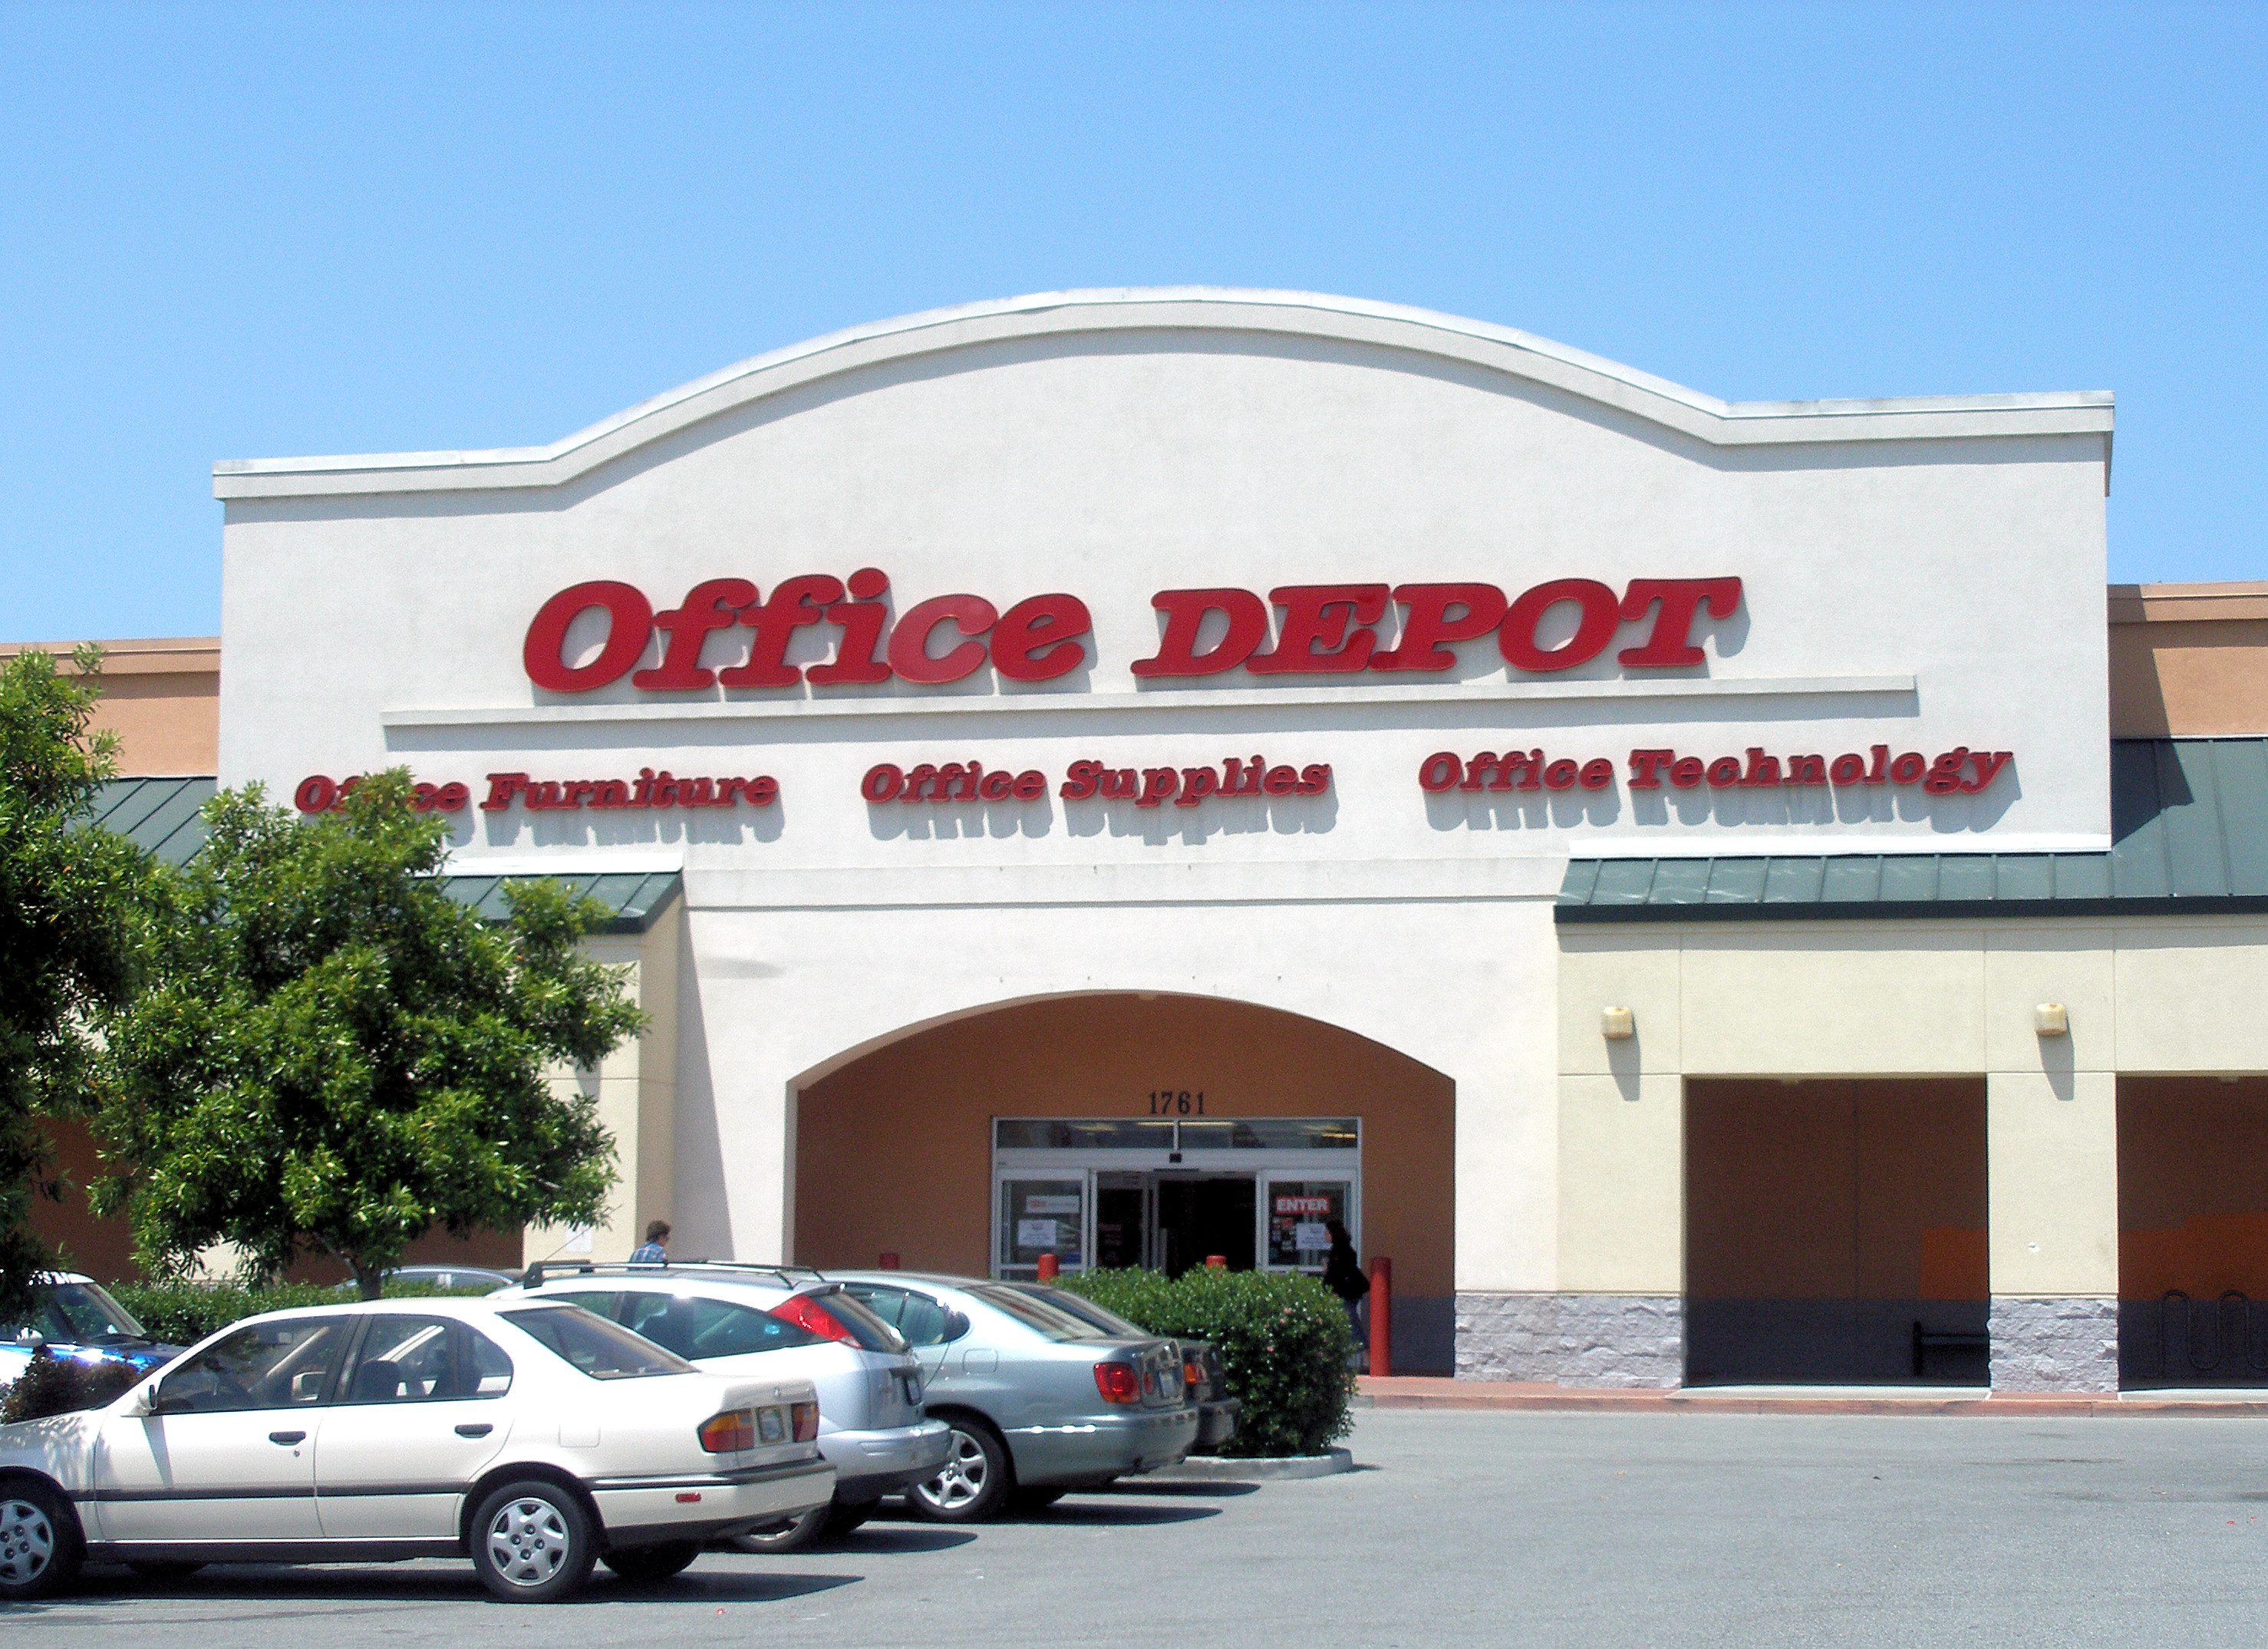 file palo alto office depot wikimedia commons. Black Bedroom Furniture Sets. Home Design Ideas